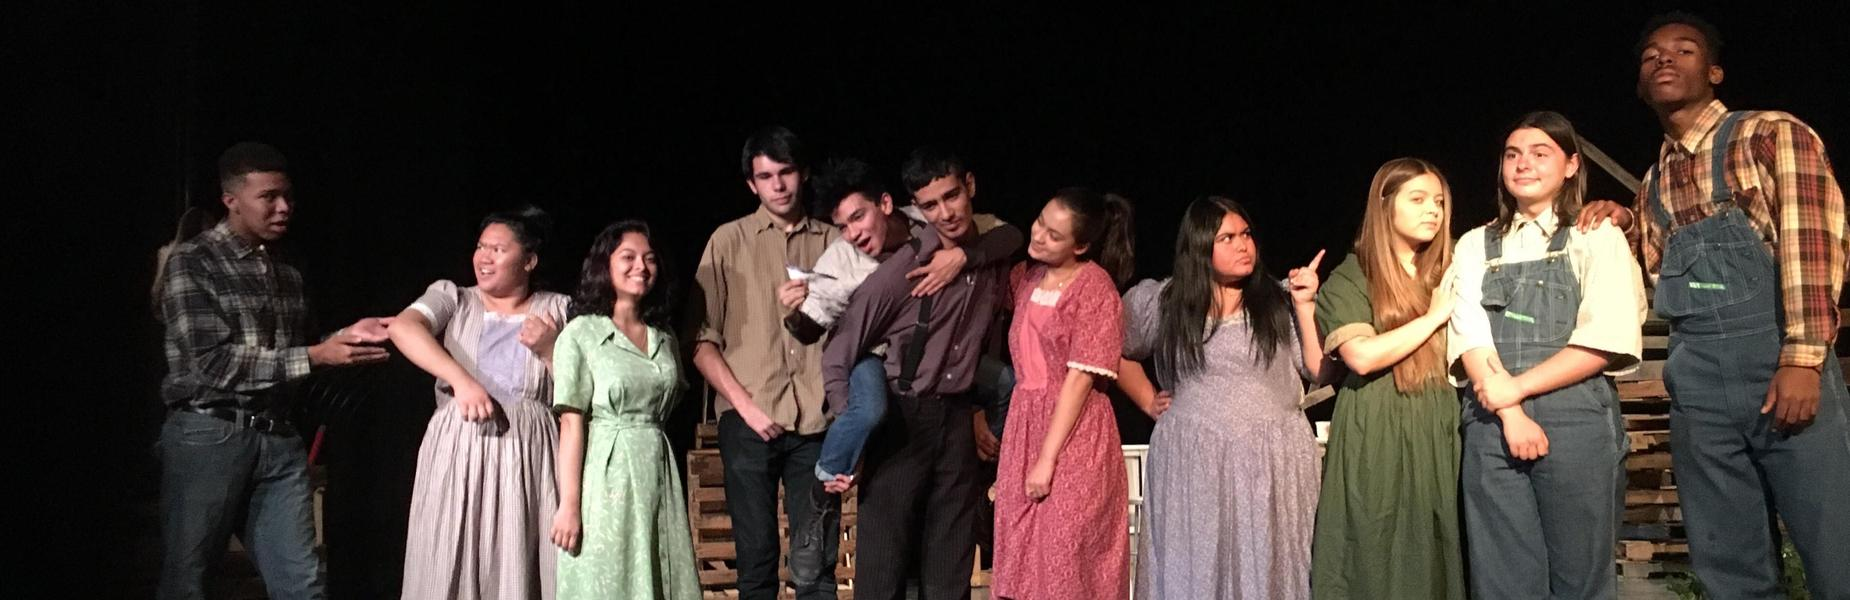 High school drama scene from Diviners